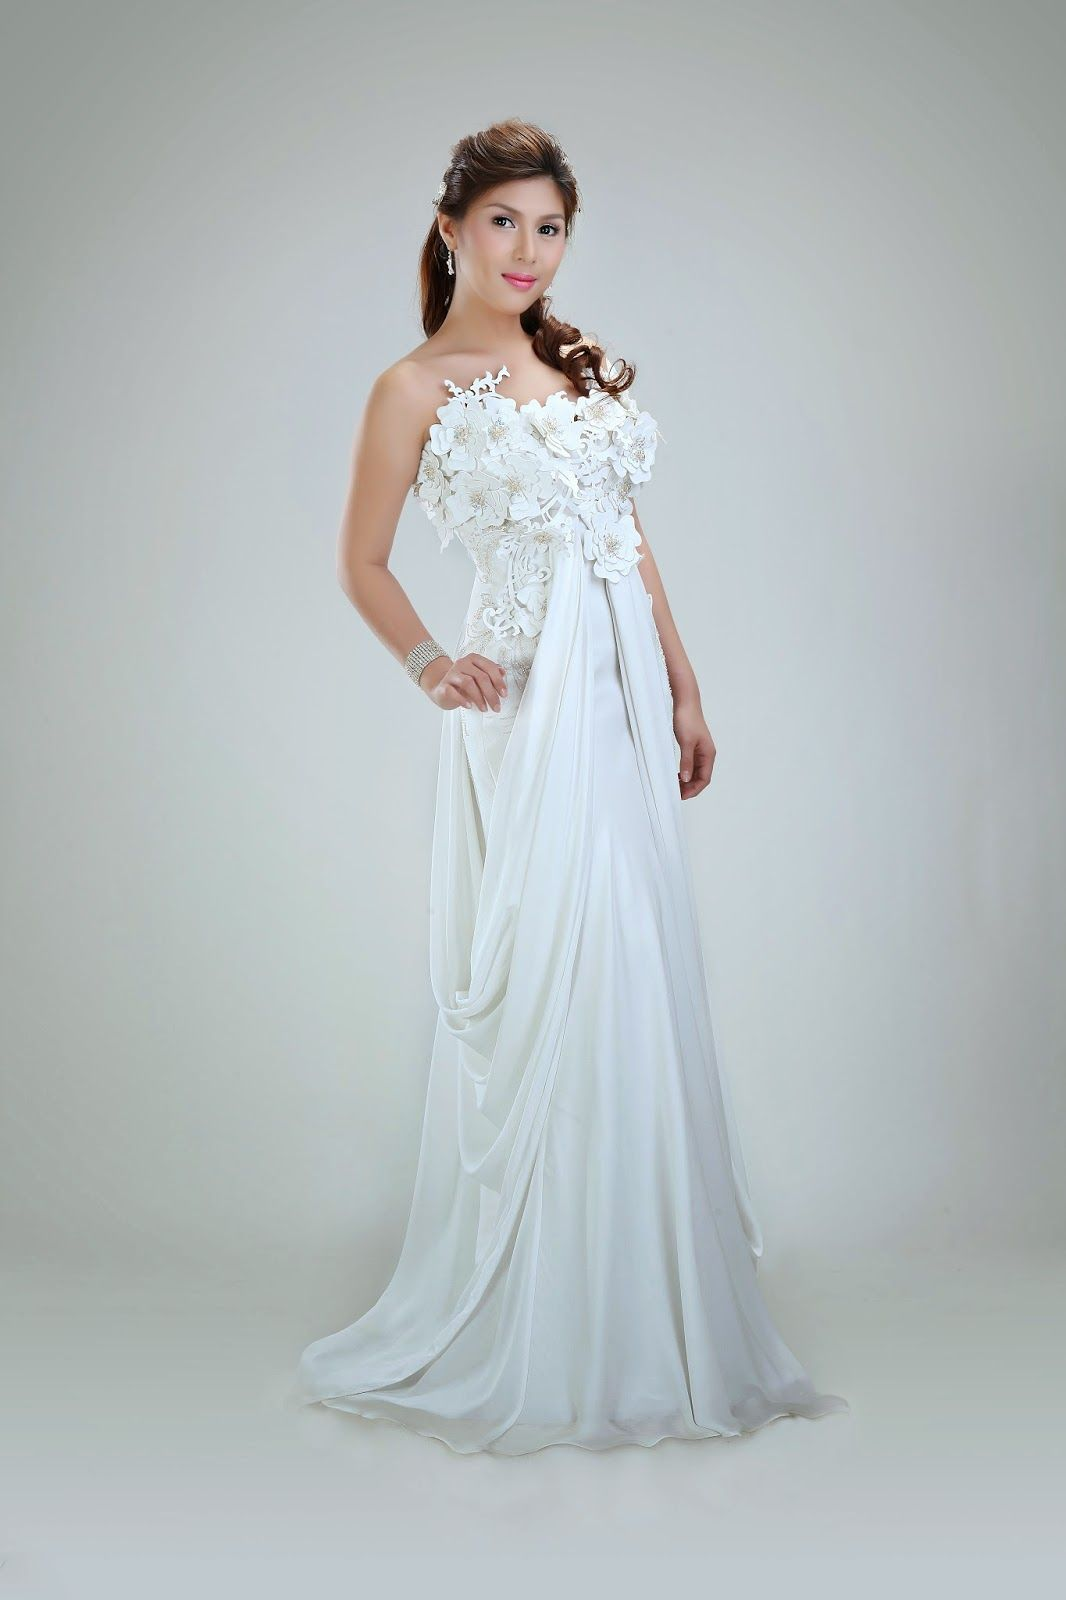 philippines wedding gown designer | wedding gown | Pinterest | Gowns ...